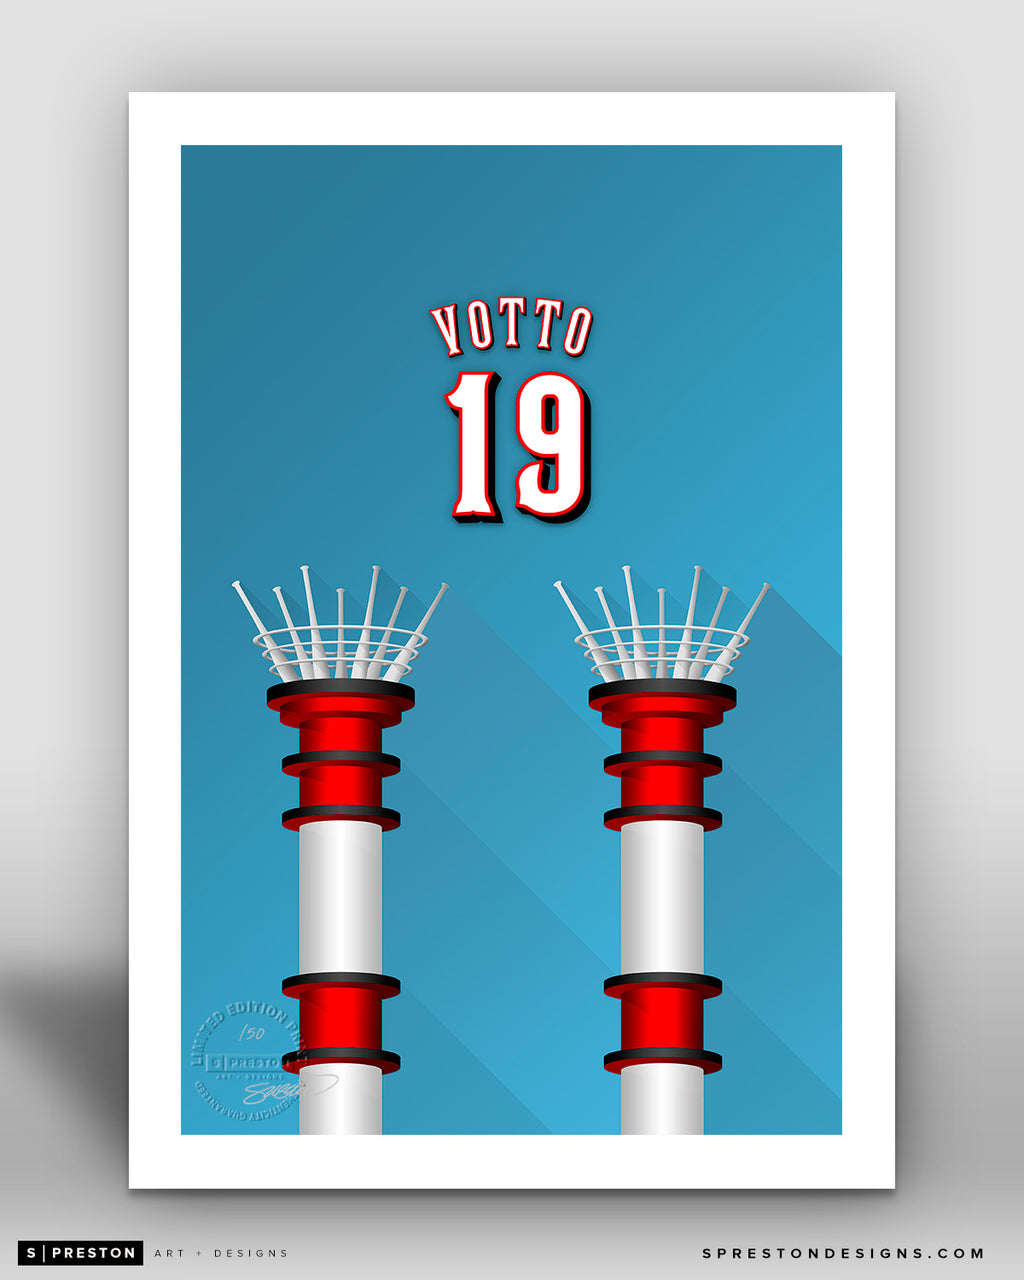 Minimalist Great American Ball Park - Player Series - Joey Votto - Cincinnati Reds - S. Preston